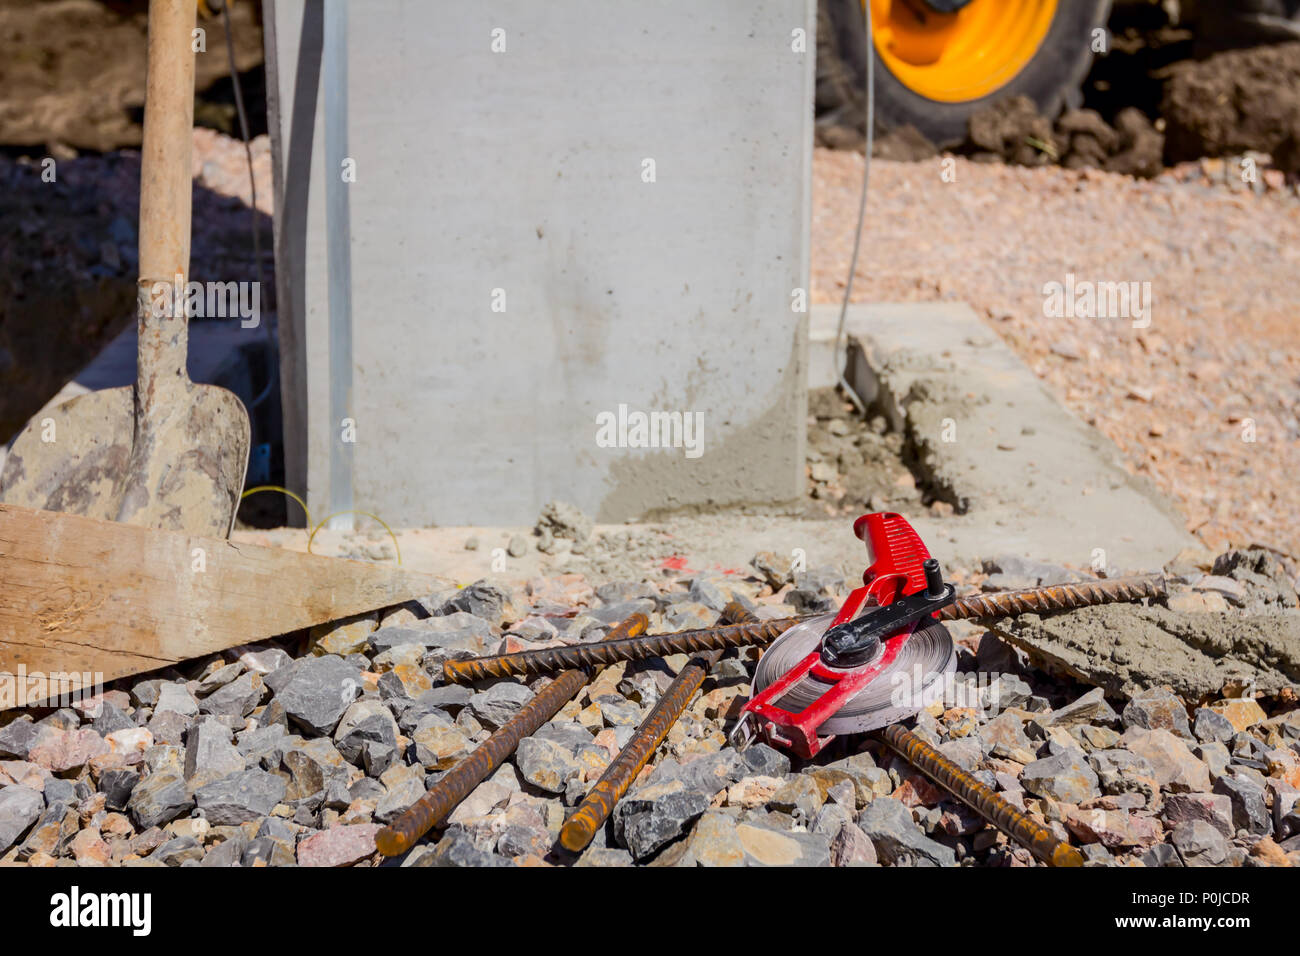 Land measure tape is on the ground after usage for construction site measurement. - Stock Image